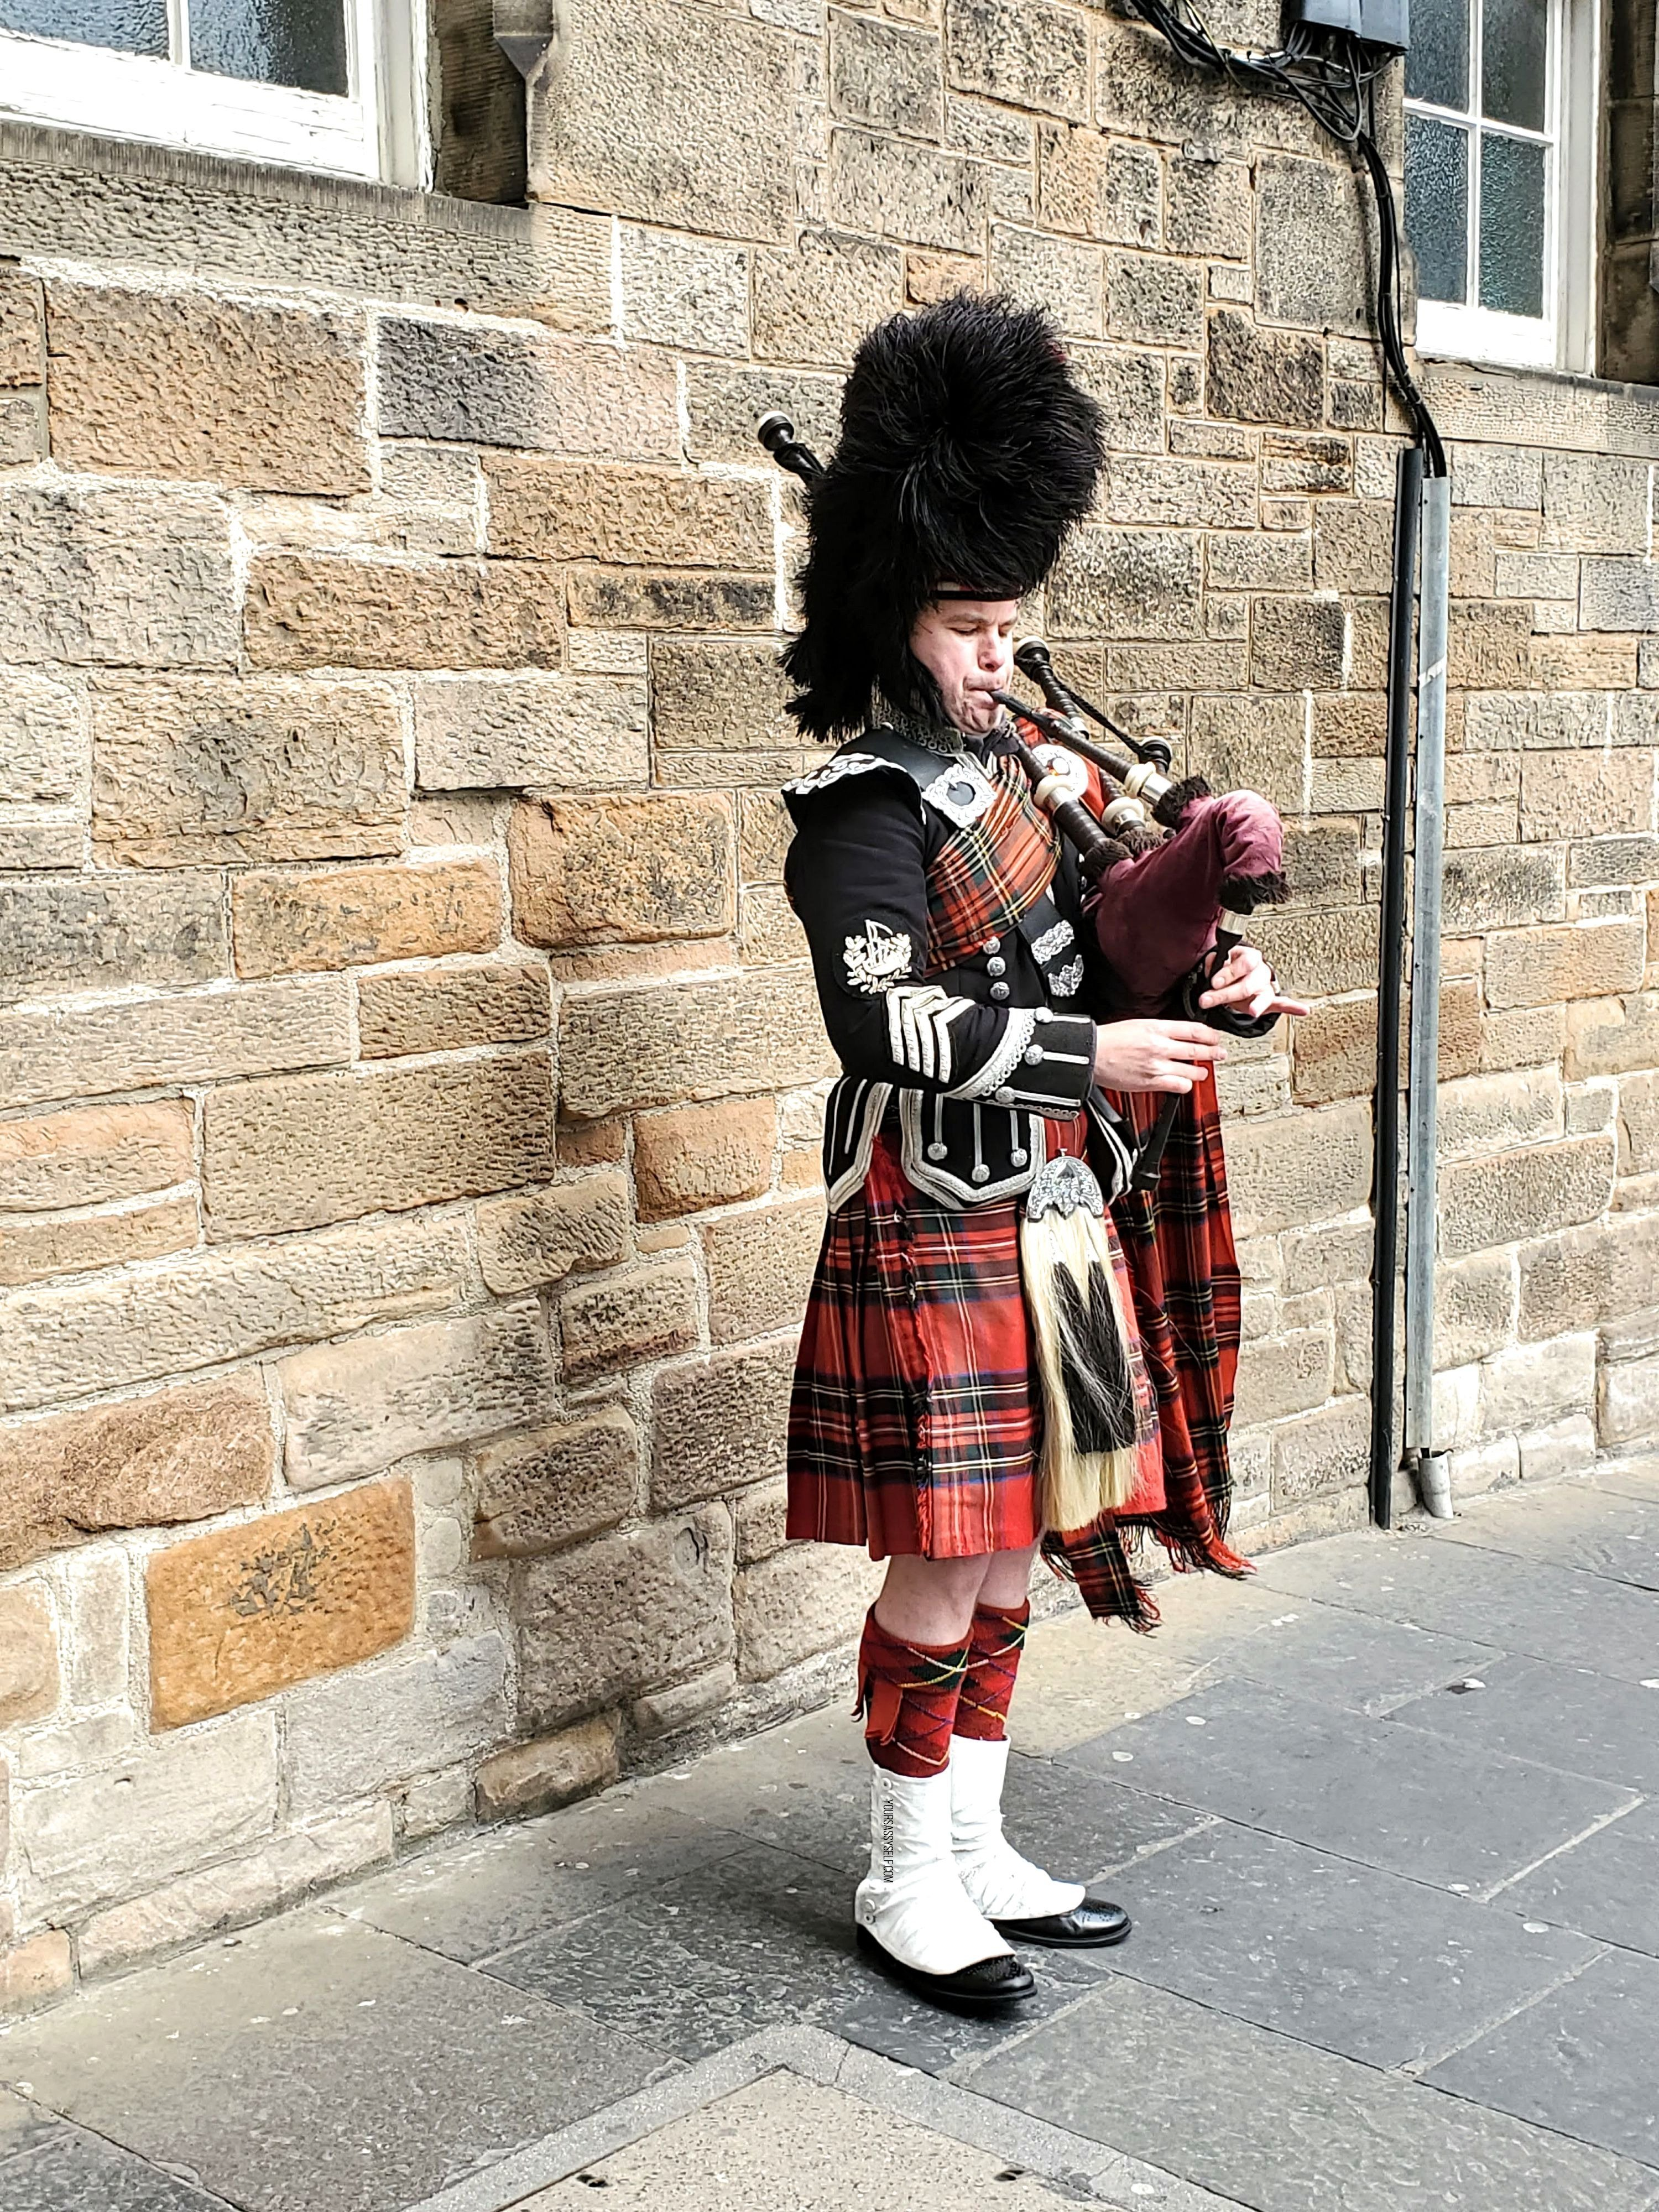 Scottish Bagpipe player - yoursassyself.com